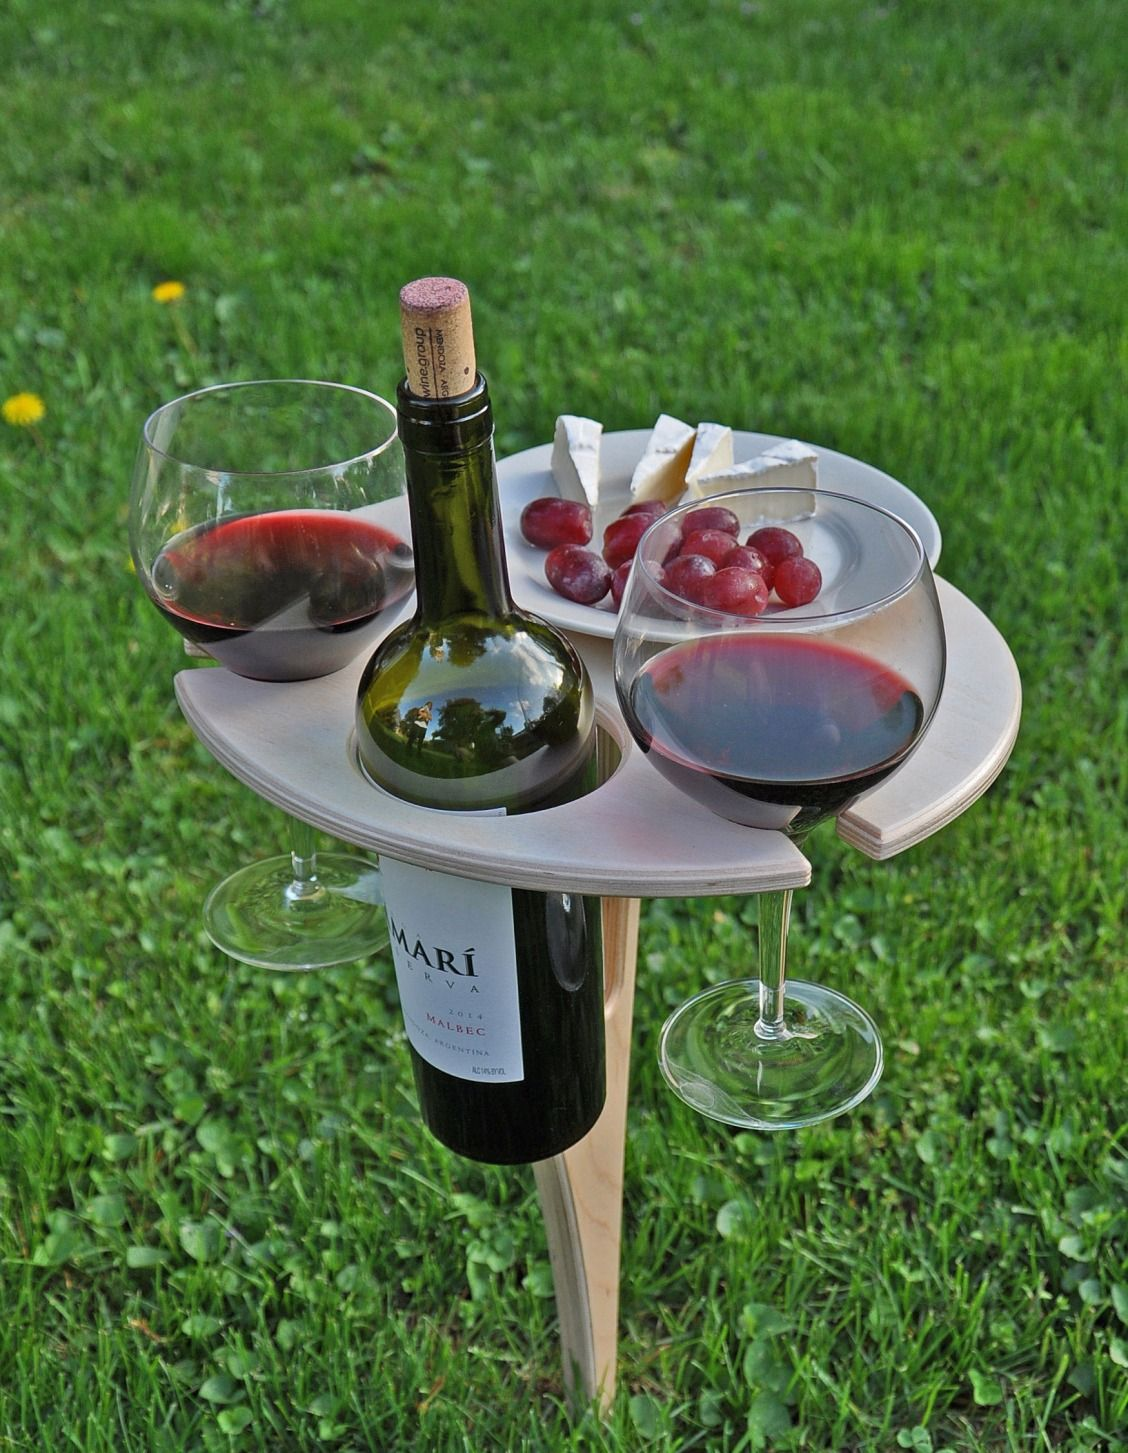 Outdoor Wine Table Folding Wine Table Wine Lover Gift Personalized Tailgating Christmas Gift Outdoor Entertaining Free Shipping Usa Outdoor Wine Table Wine Table Folding Wine Table